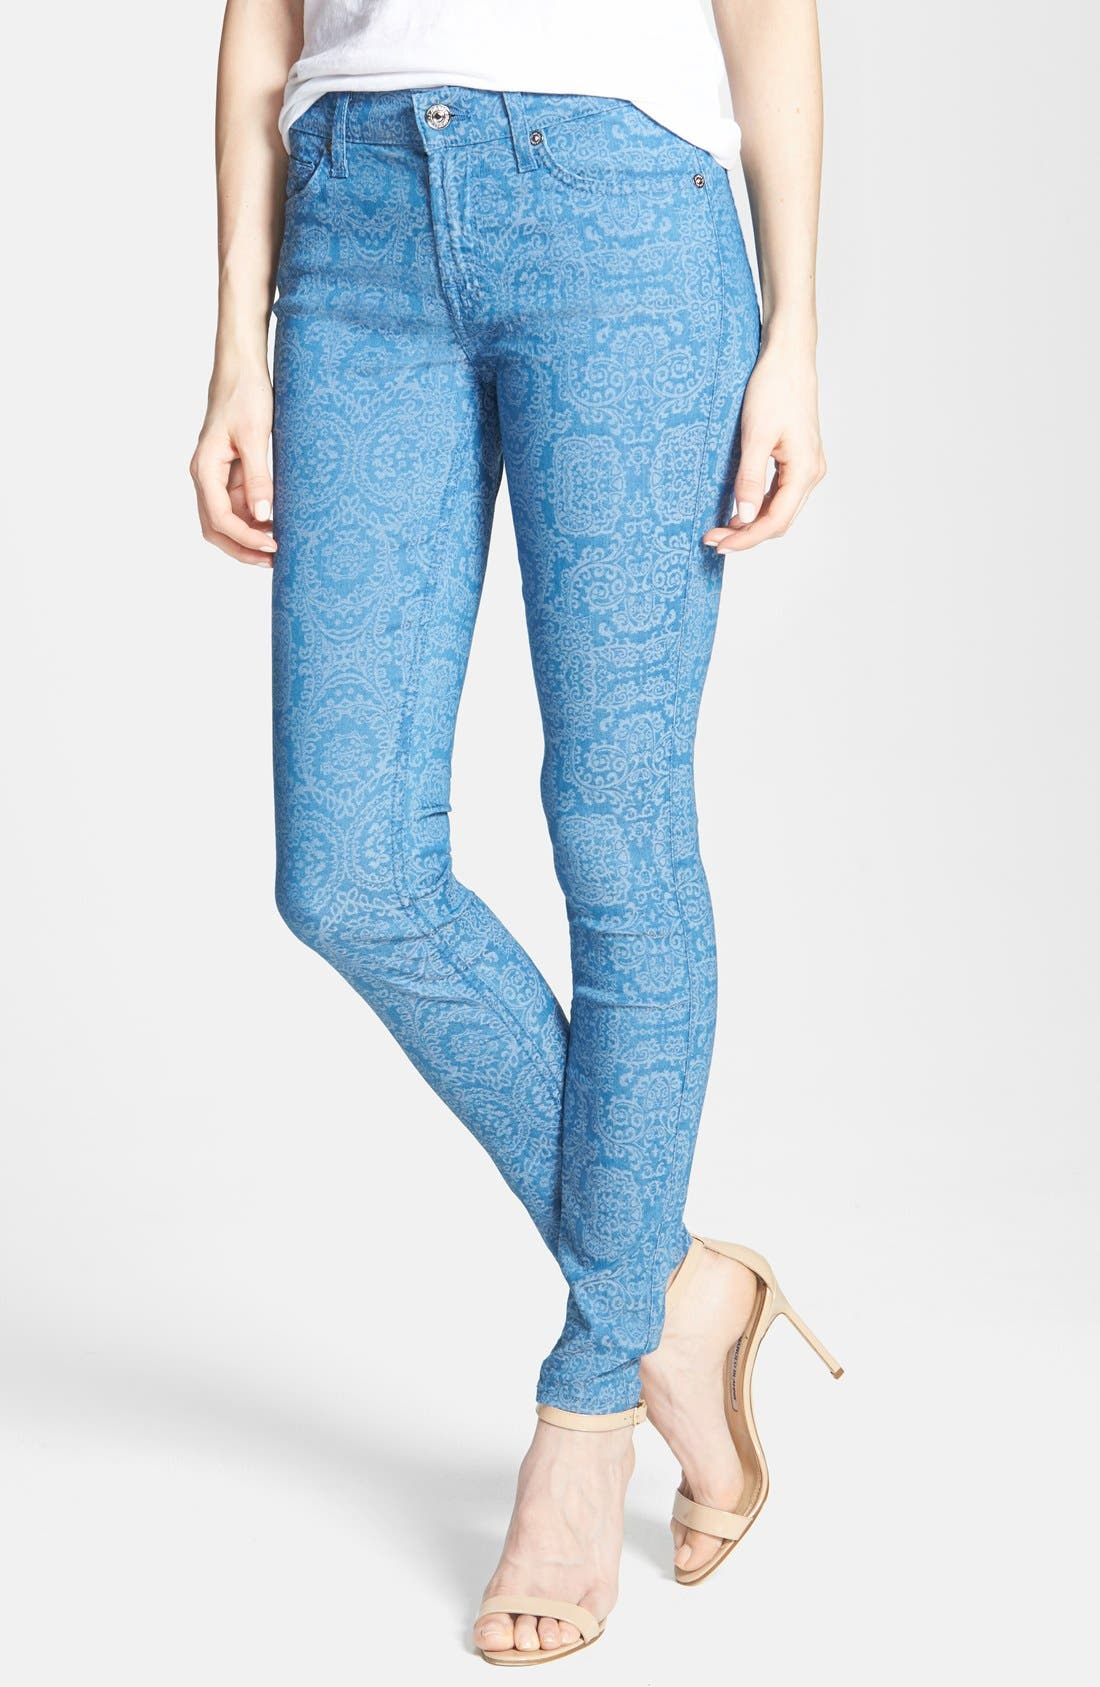 Alternate Image 1 Selected - 7 For All Mankind® 'The Skinny' Print Jeans (Moroccan Blue)